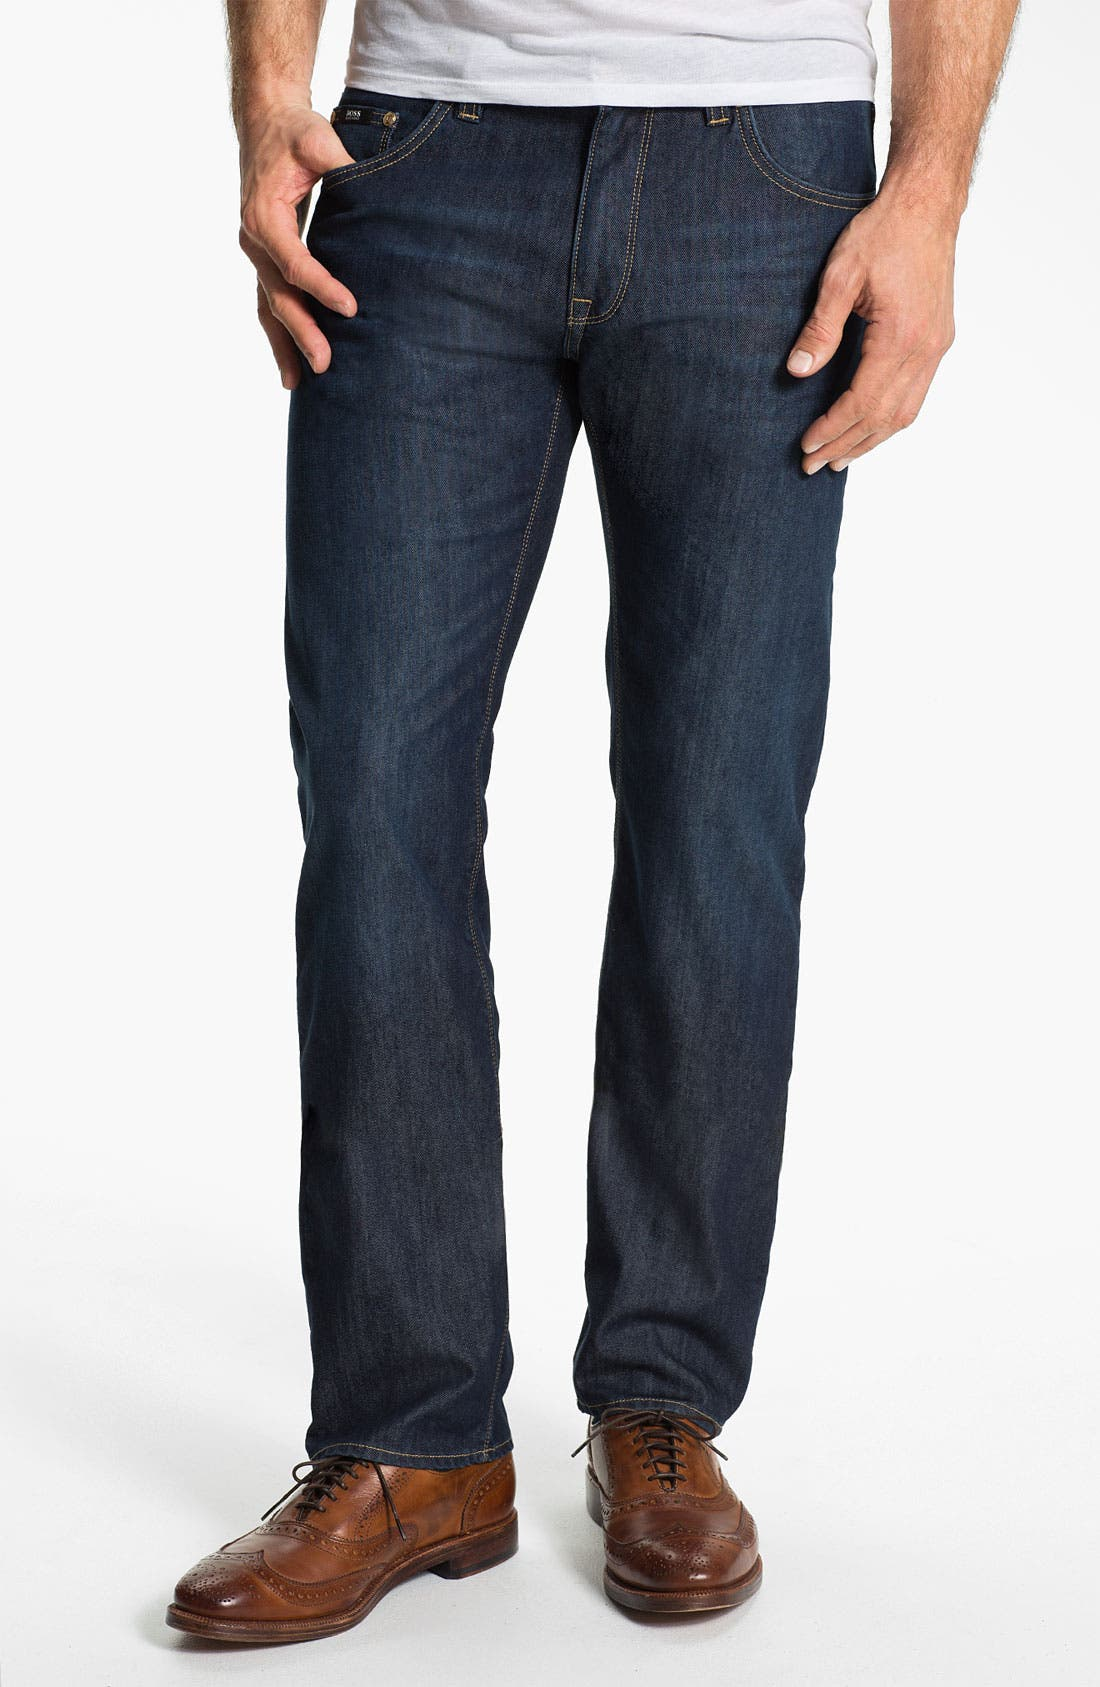 Alternate Image 1 Selected - BOSS Black 'Maine' Straight Leg Jeans (Blue Flannel)